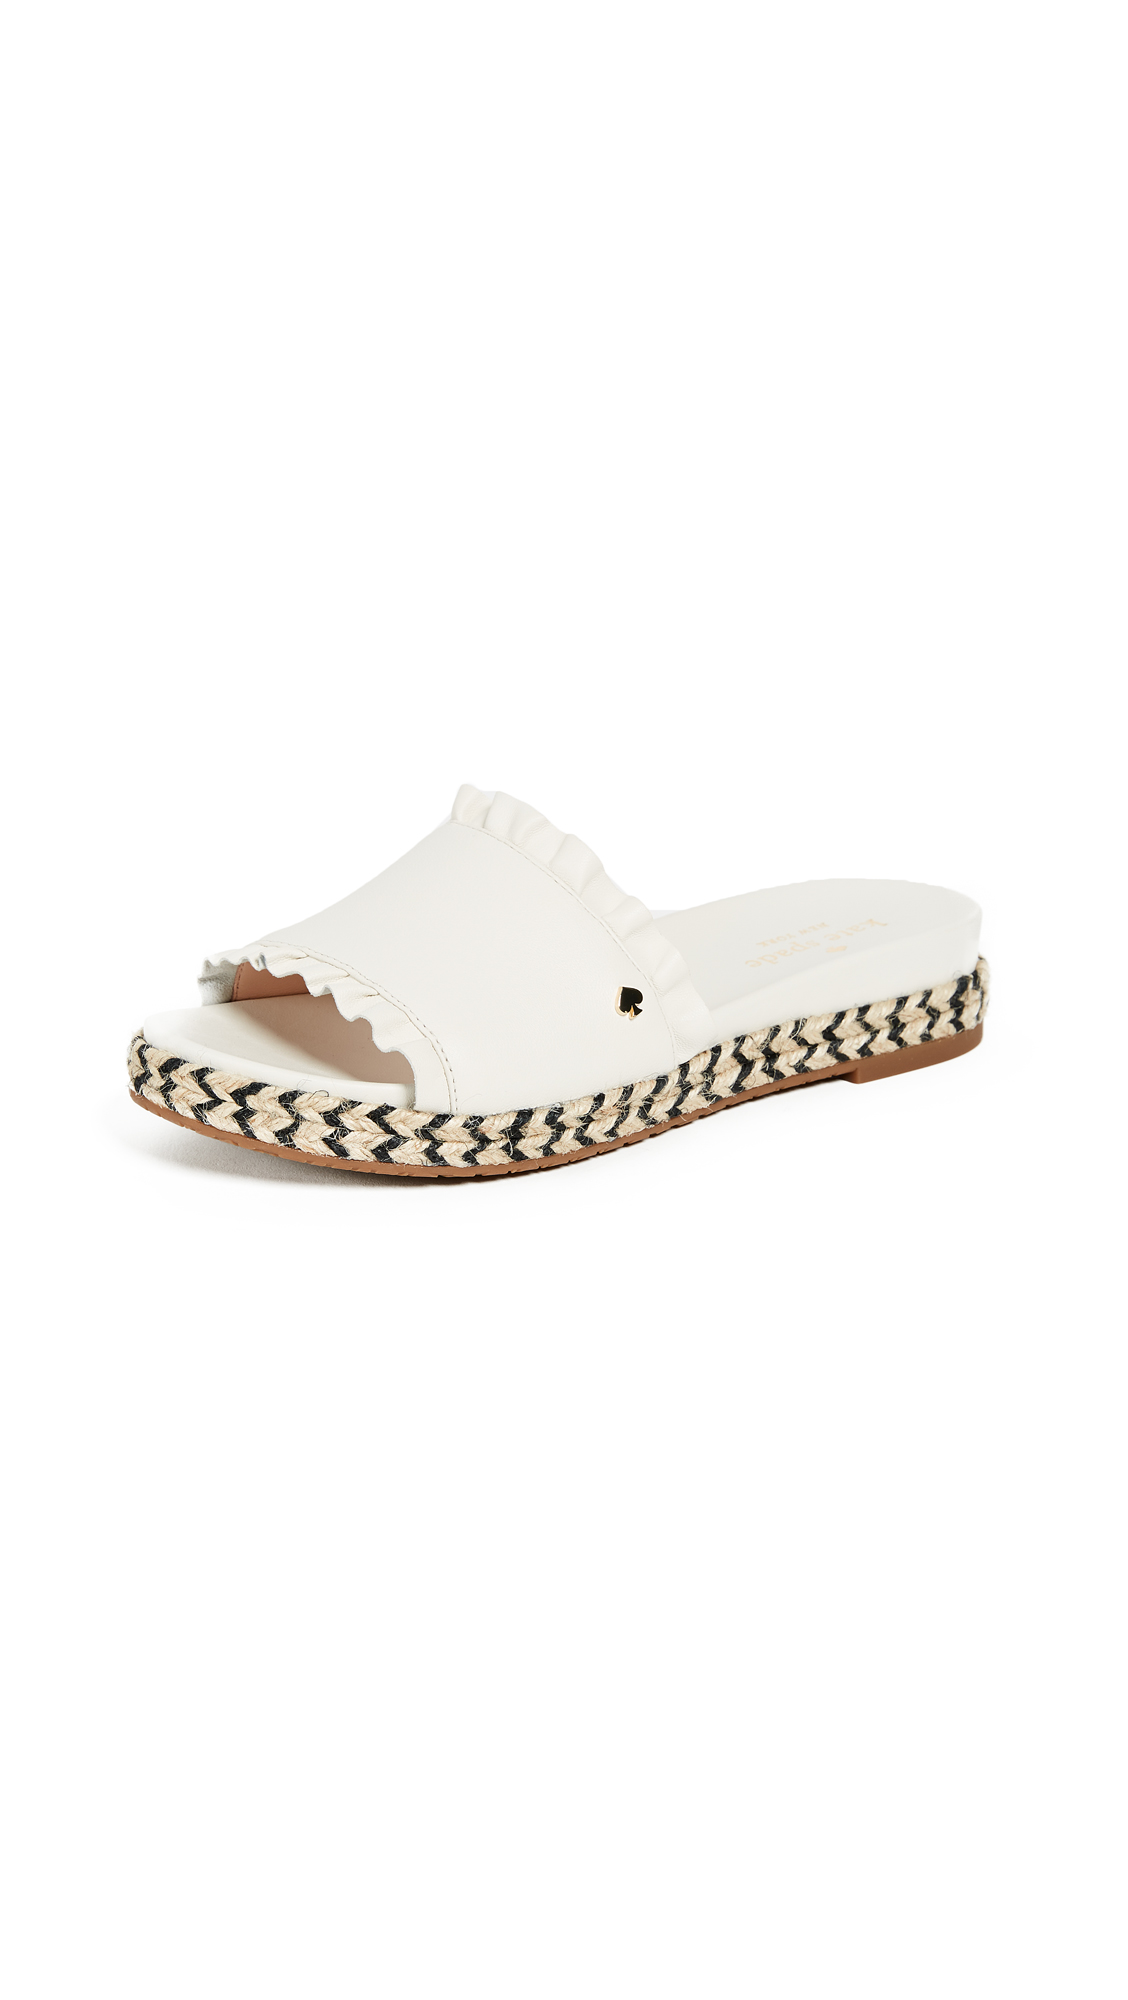 Kate Spade New York Zahara Slides - Off White